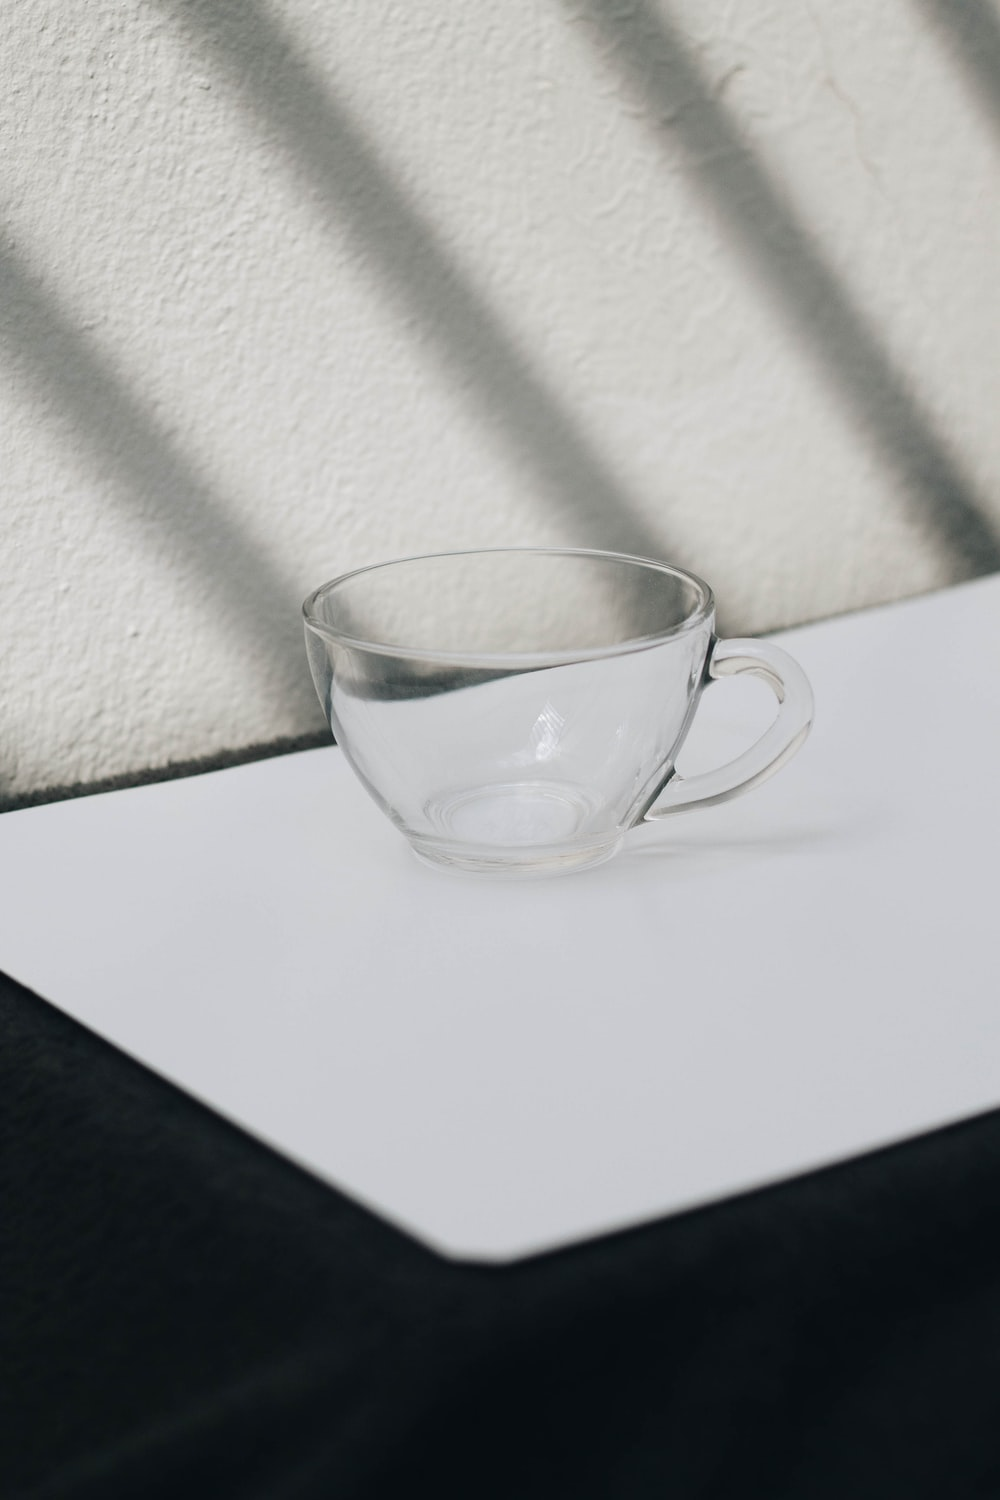 clear glass cup on white table